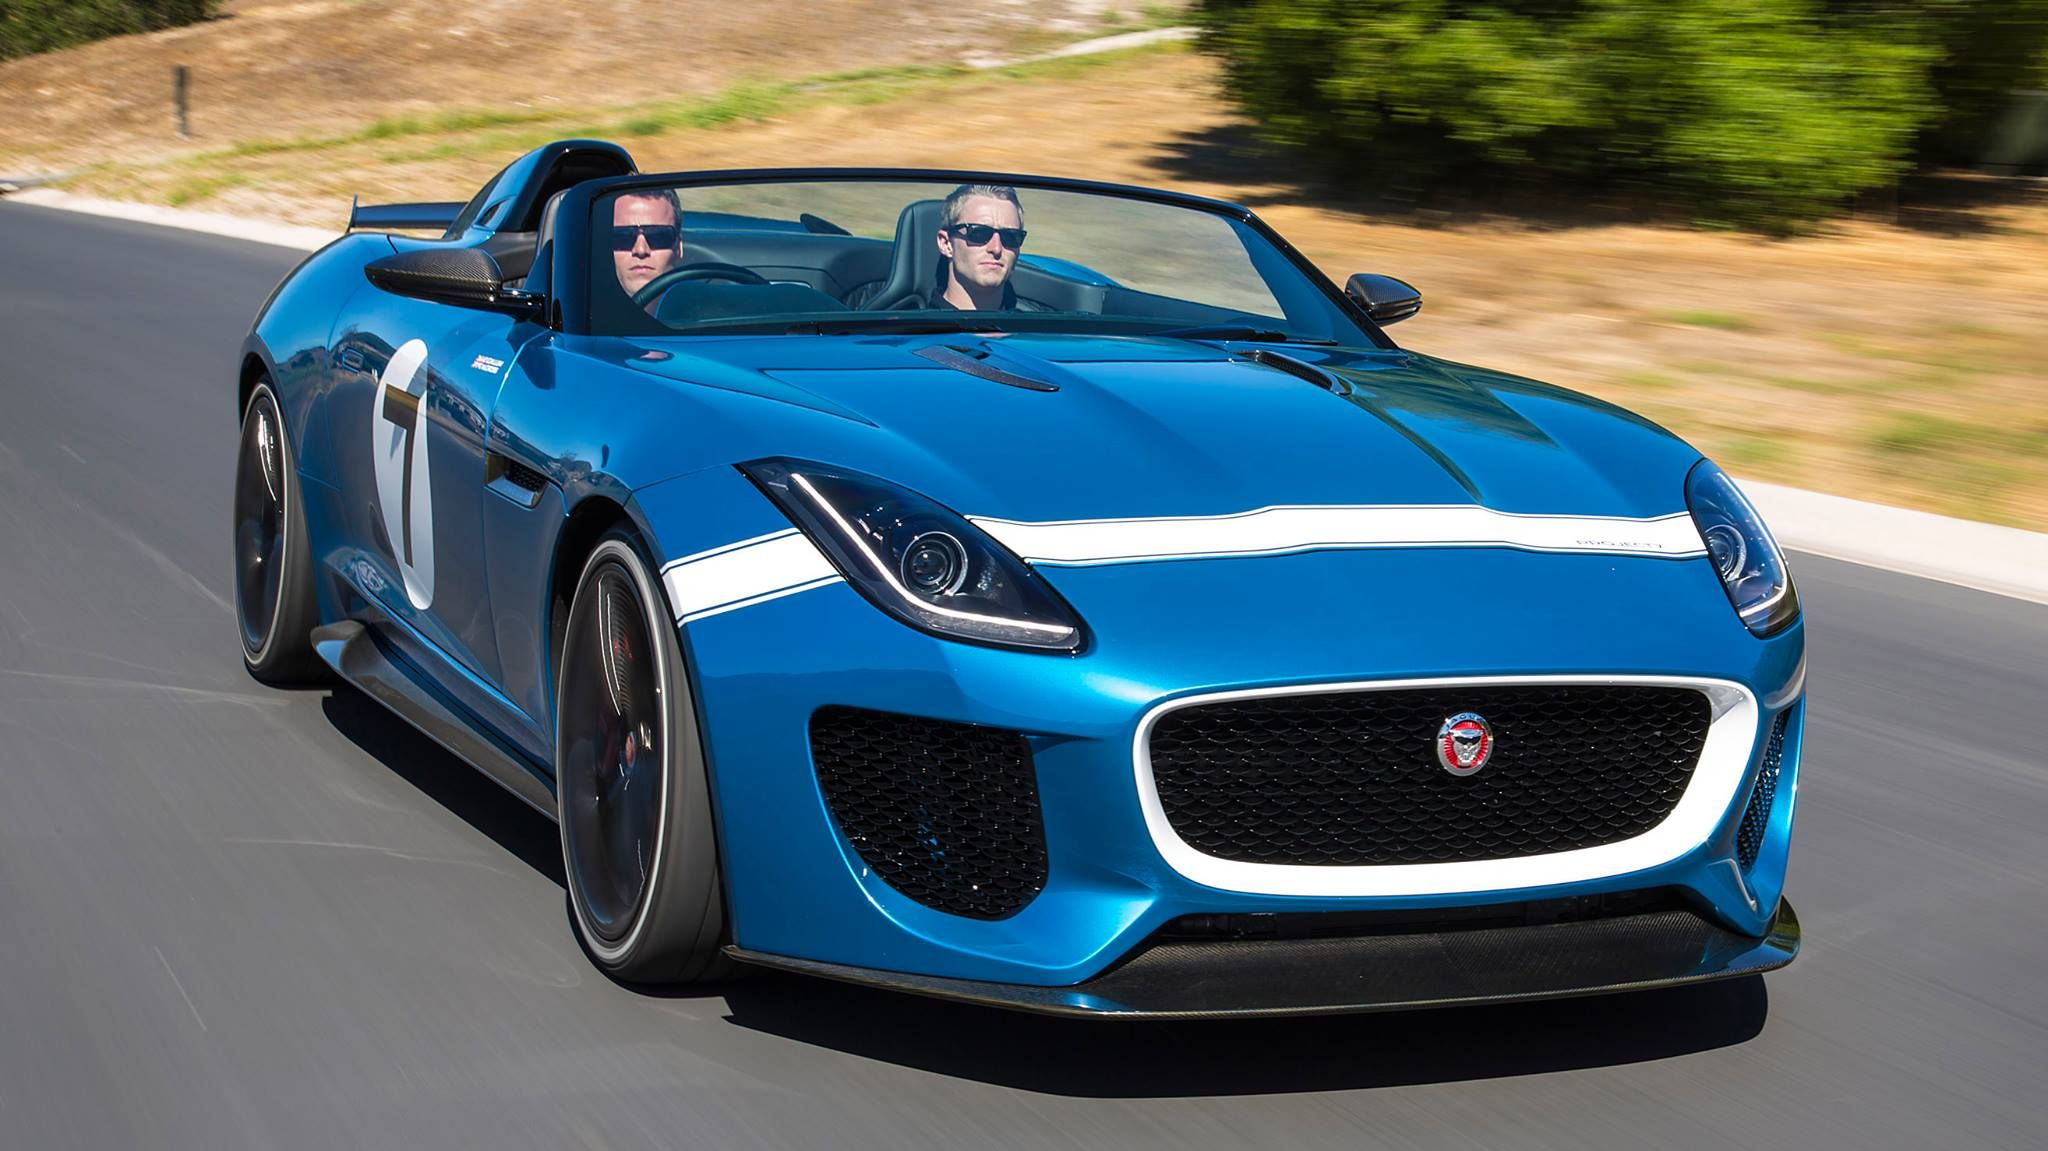 Pin by Ron Snyder on Cars Concept cars, New cars, Jaguar